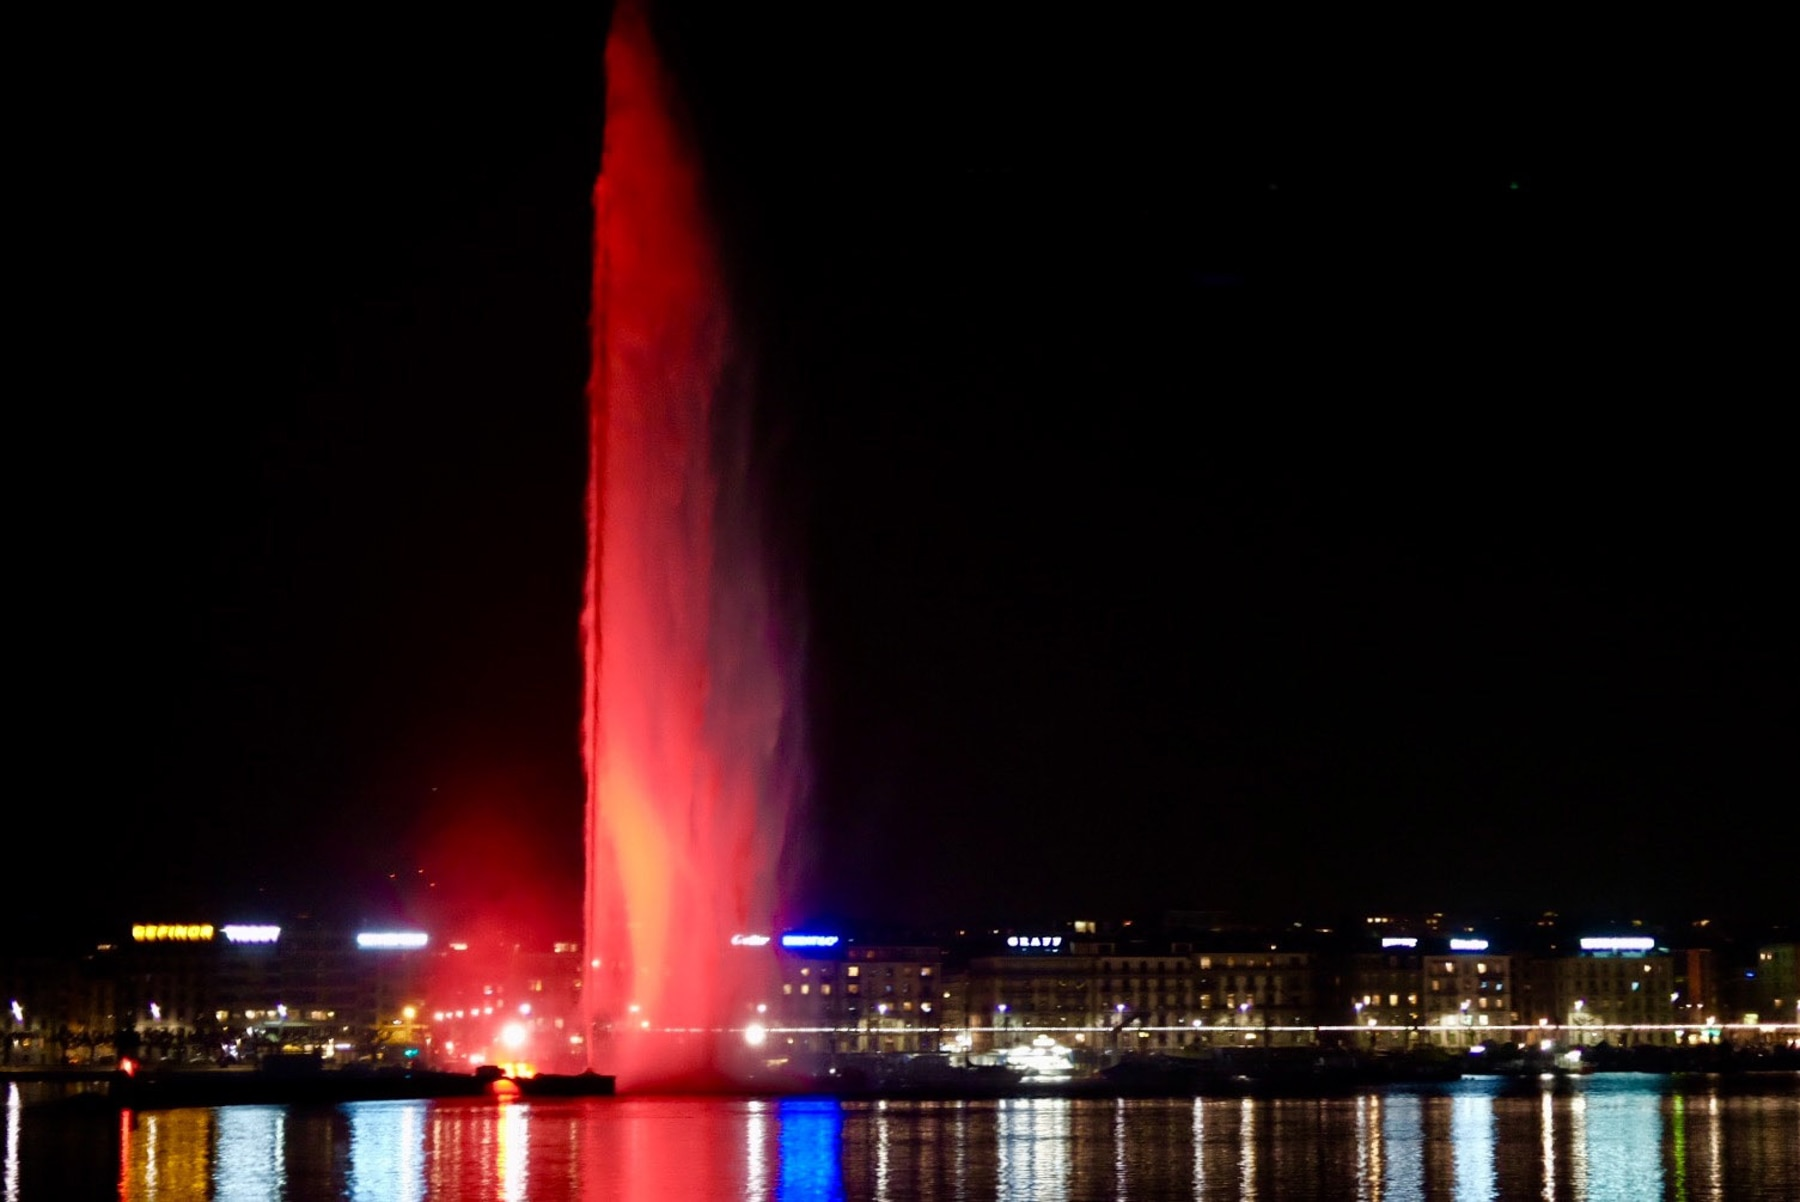 Red water spouting up from a lake against a black night sky (Stop TB Partnership)